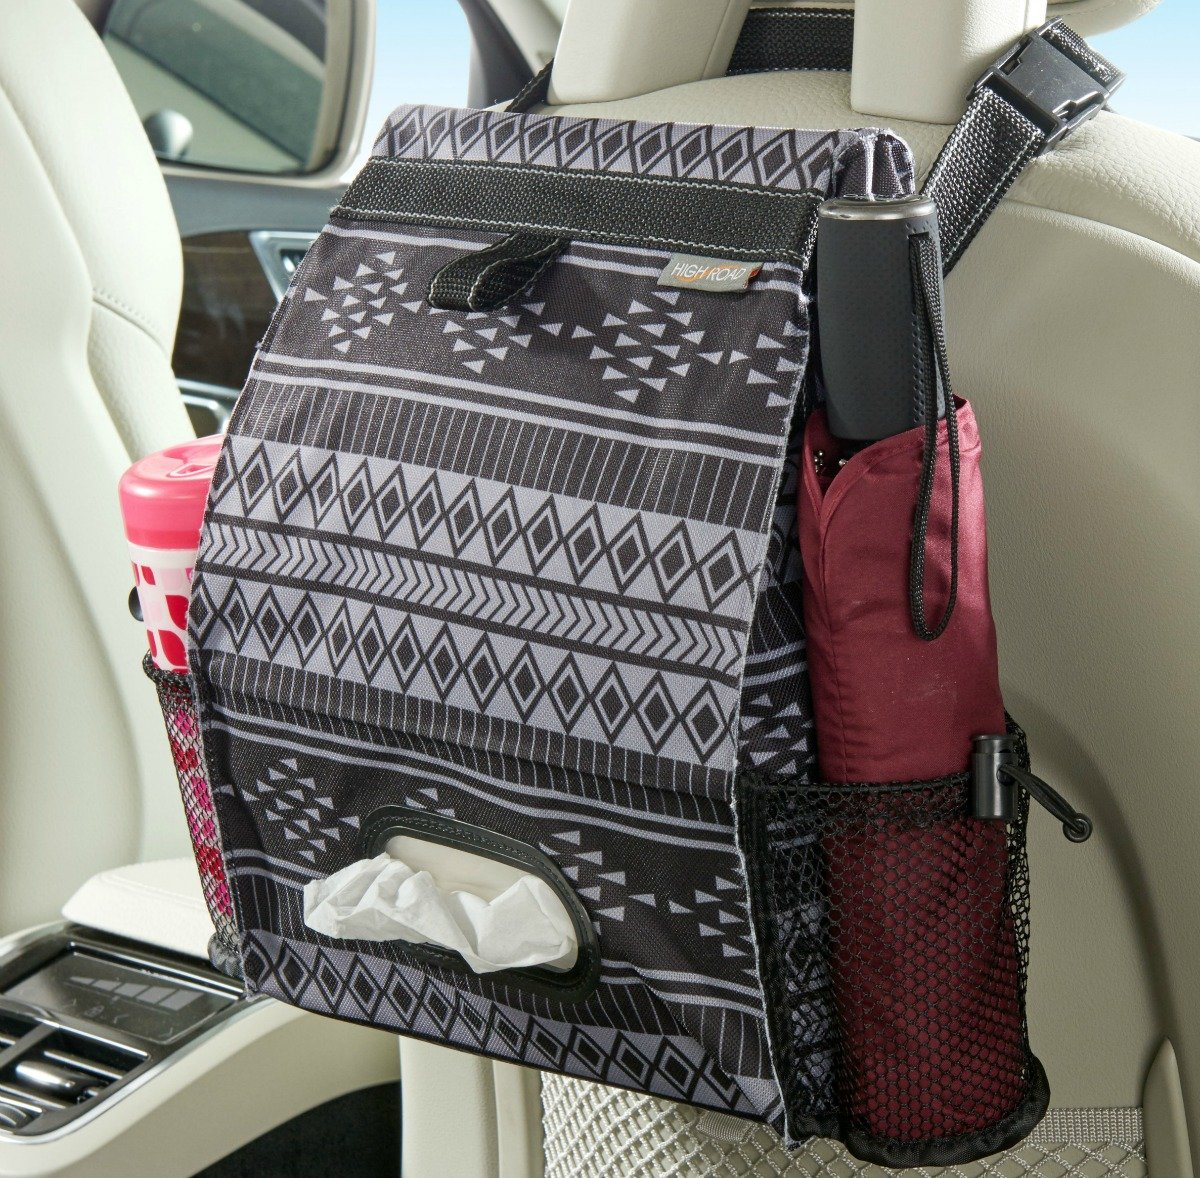 High Road Puff'nStuff Car Trash Bag and Seat Back Organizer with Tissue Holder (Baja) by High Road